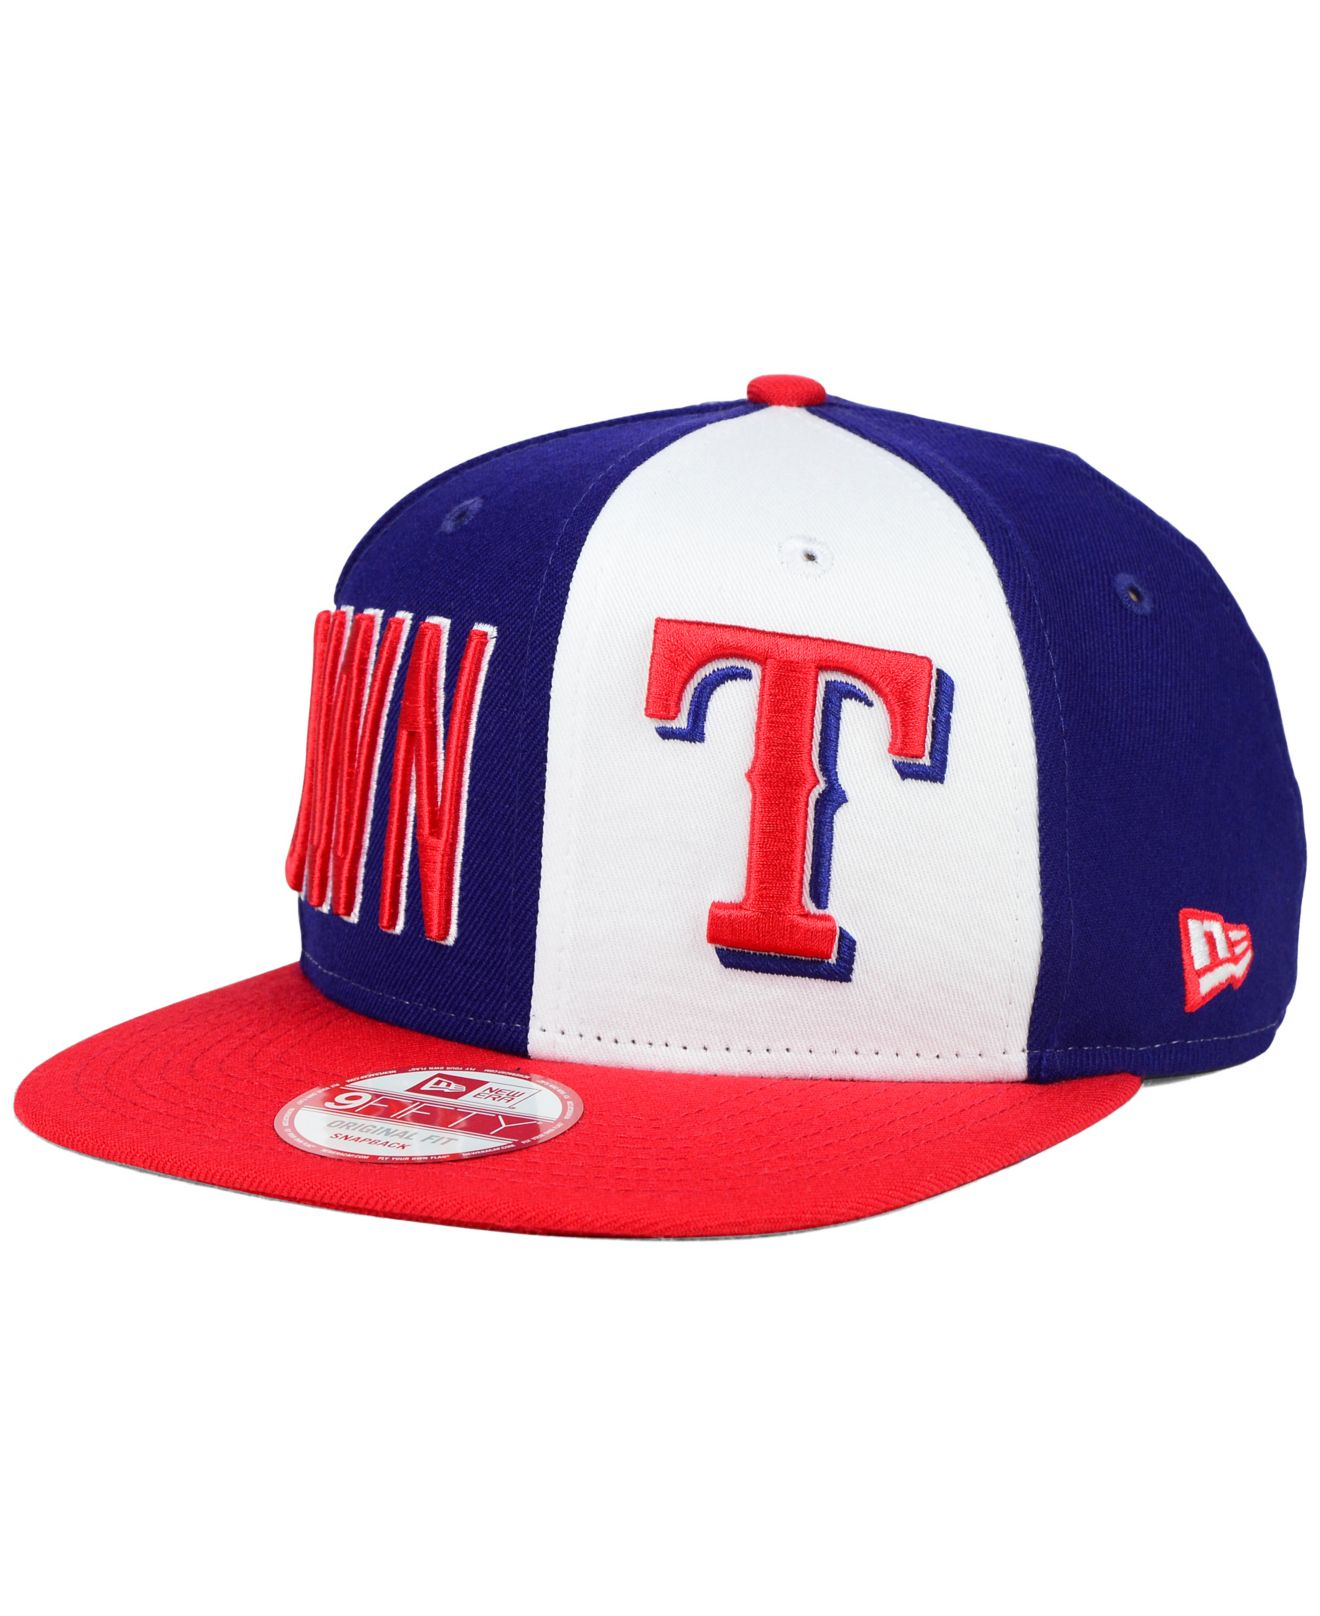 new style 9c0a7 37977 italy lyst ktz texas rangers my block 9fifty snapback cap in blue for men  6650e fb15f